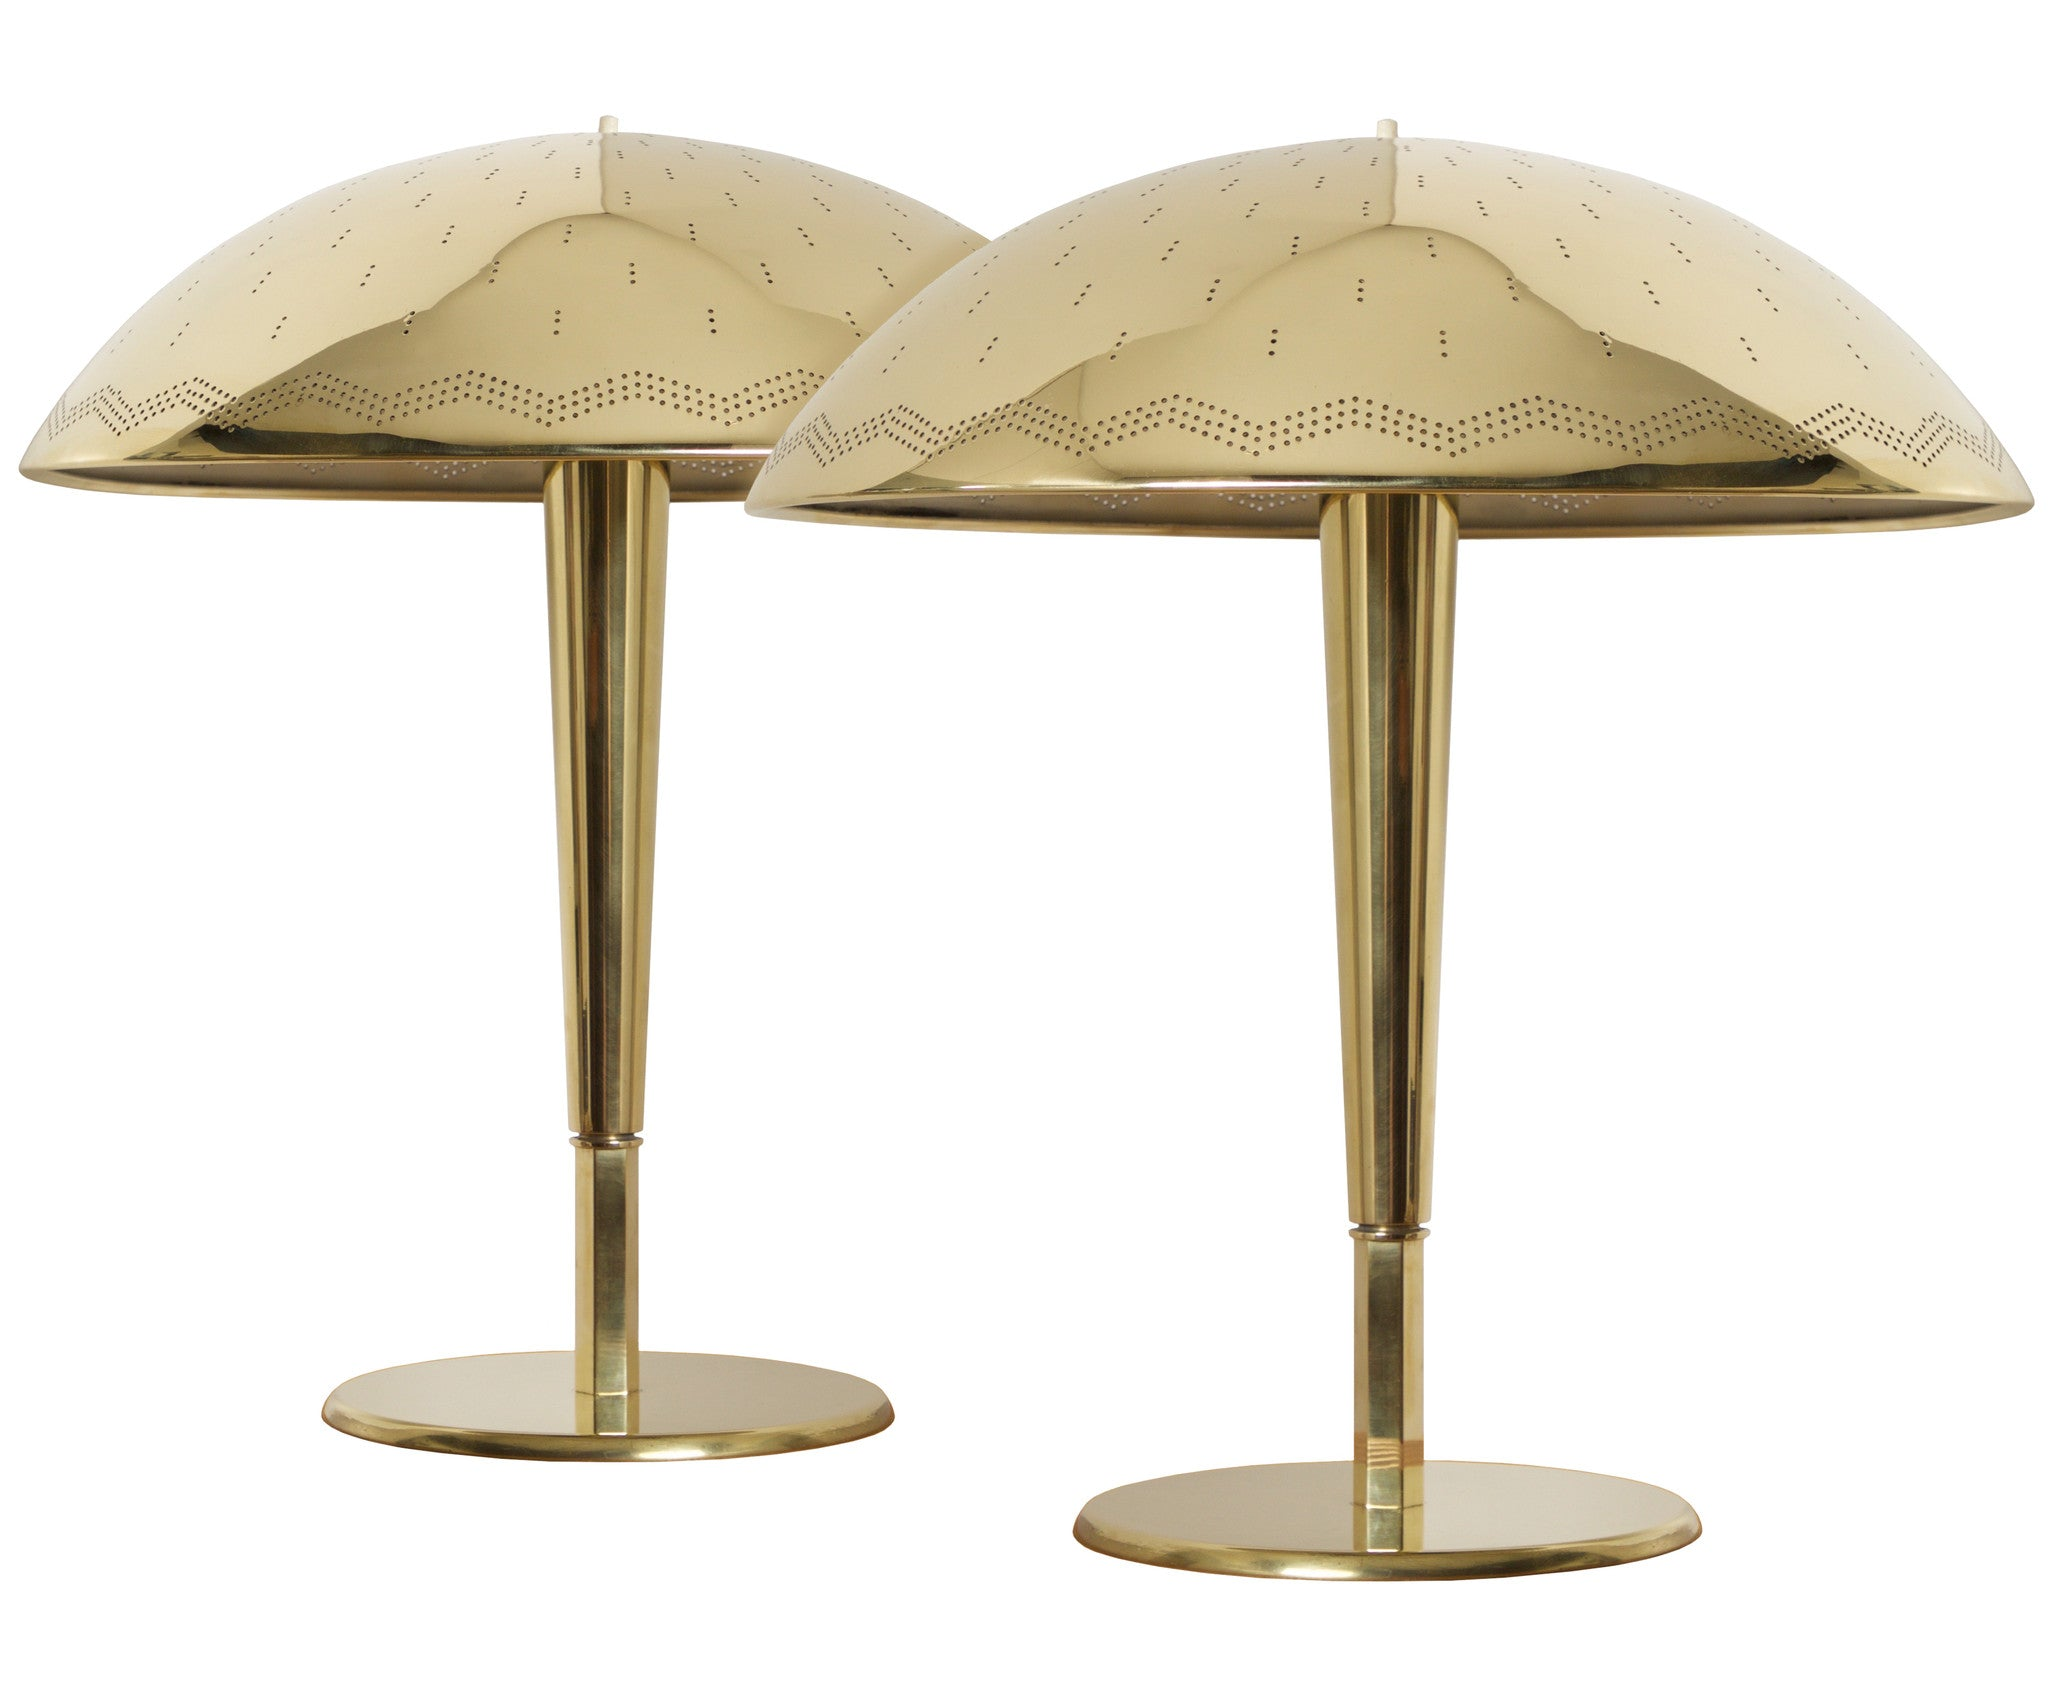 Paavo Tynell, Model 5061, Pair of Table Lamps by Taito Oy, Finland, 1940s - The Exchange Int